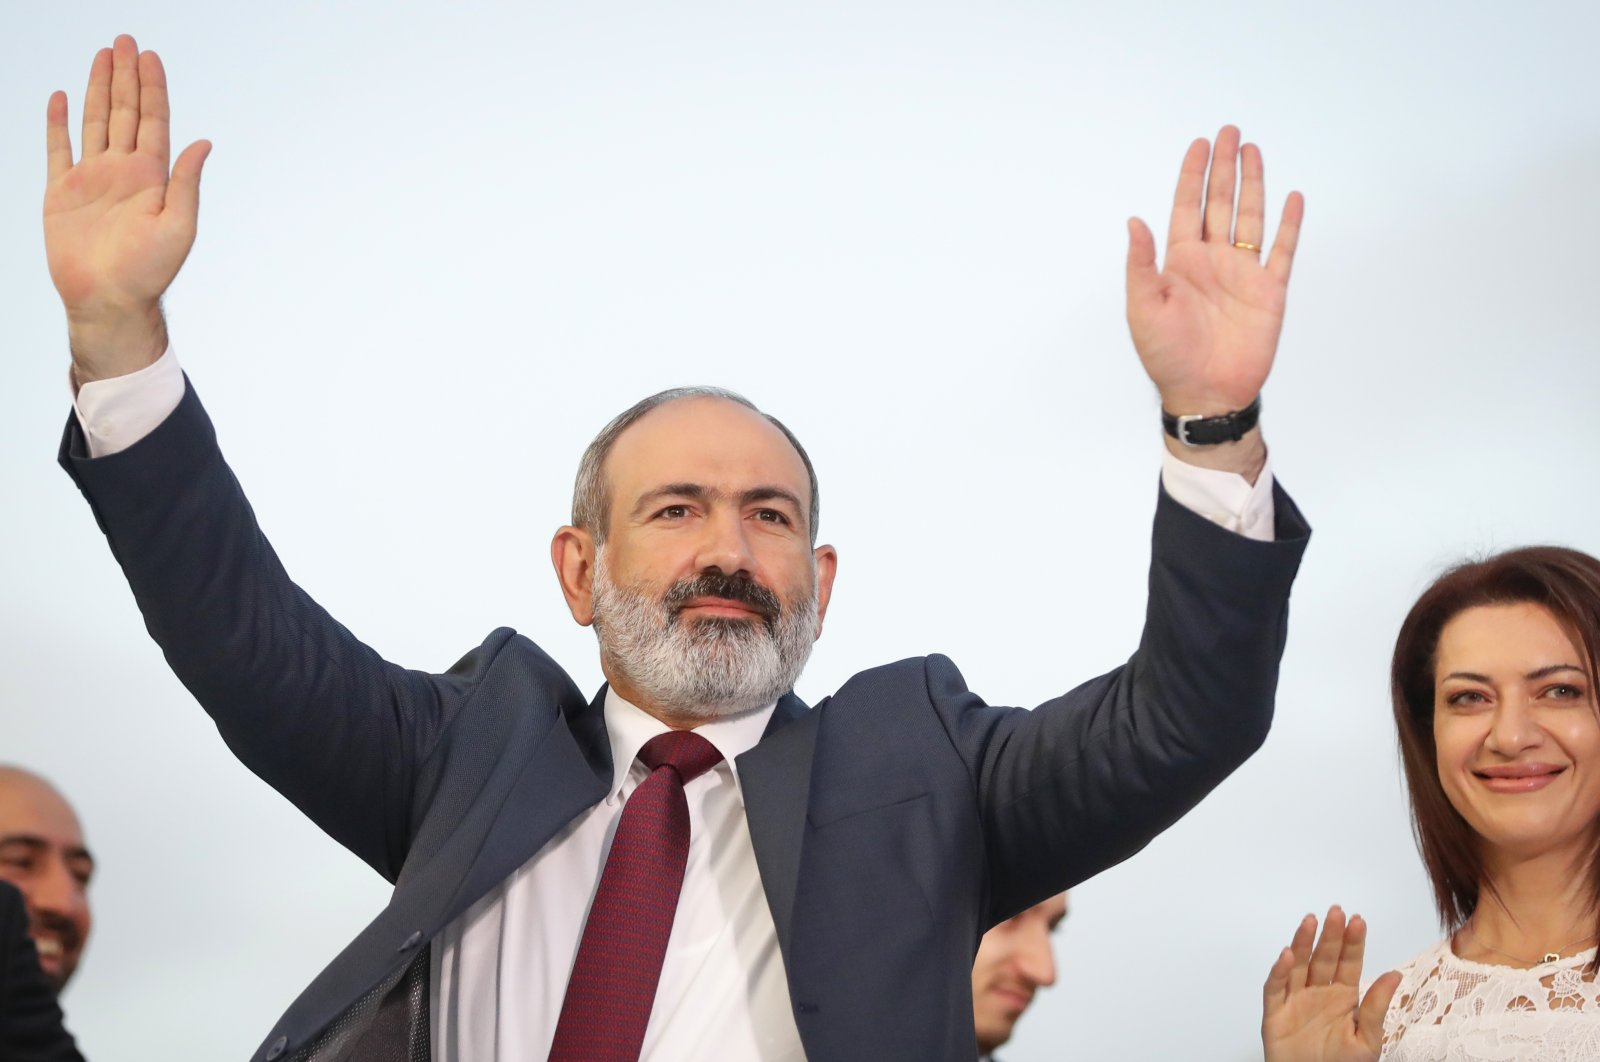 Armenian acting Prime Minister Nikol Pashinian greets his supporters during a rally after winning snap parliamentary elections in Yerevan, Armenia, June 21, 2021. (AP Photo)